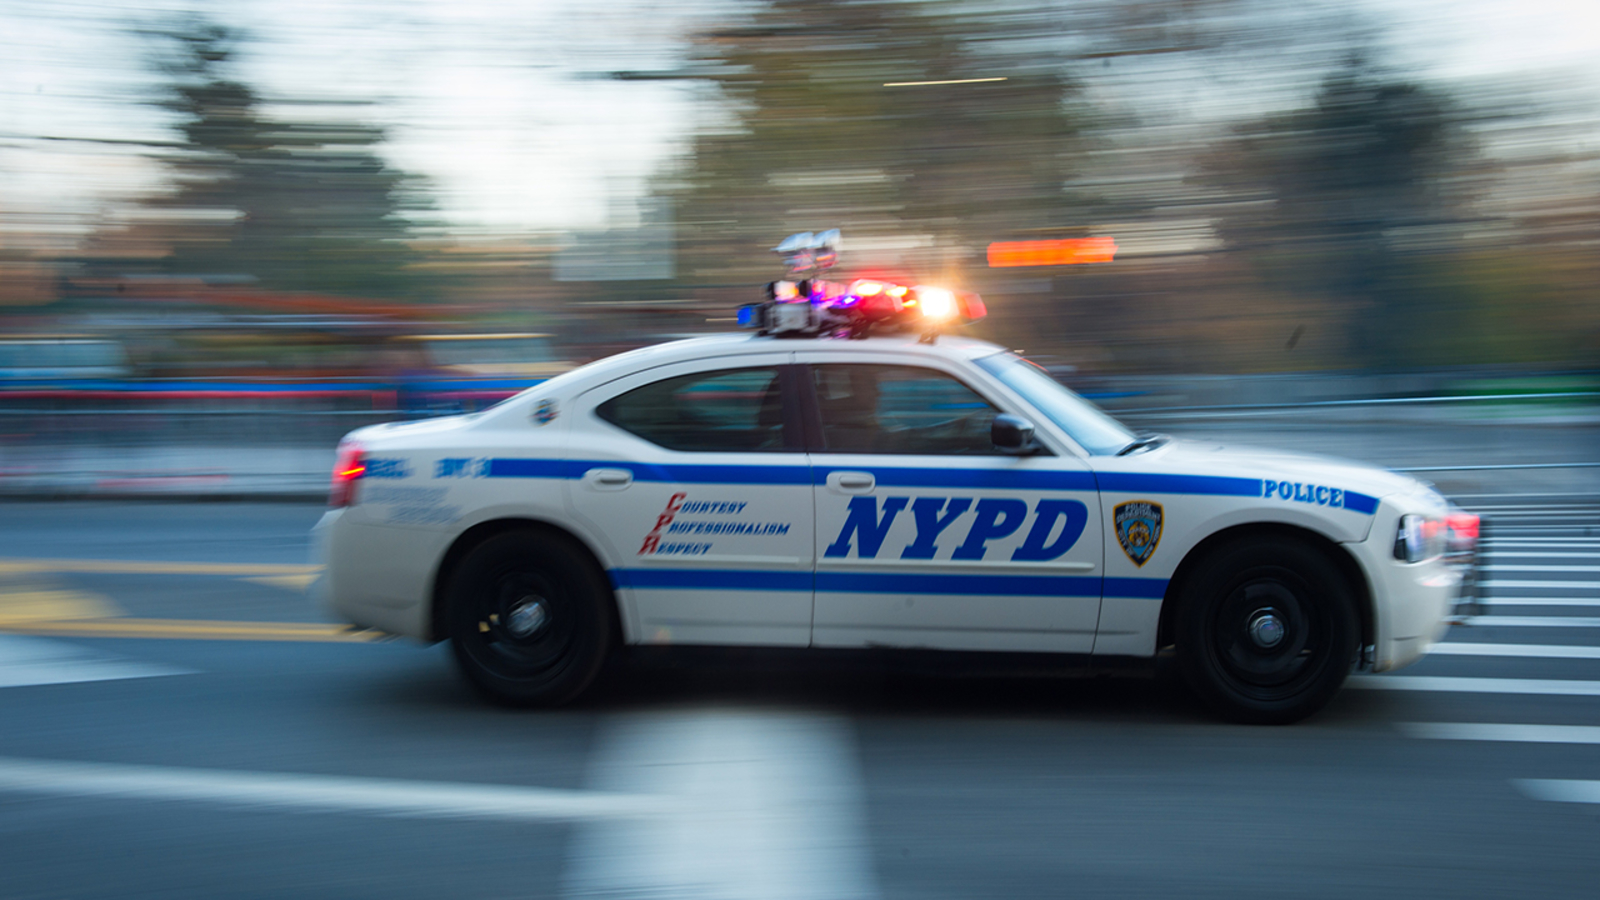 2 teenage girls charged with assault and robbery in Harlem